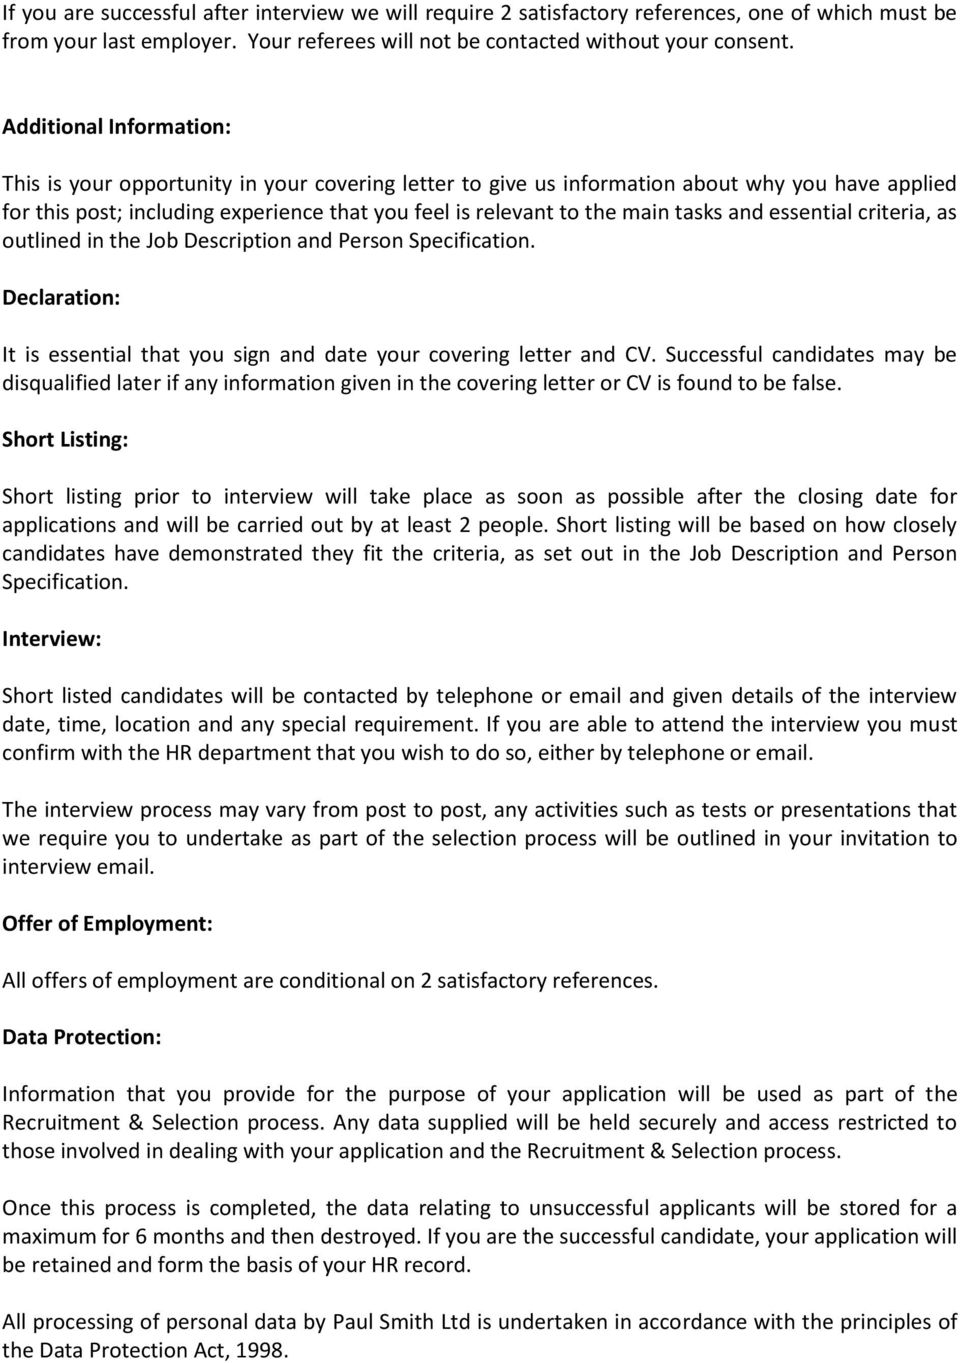 tasks and essential criteria, as outlined in the Job Description and Person Specification. Declaration: It is essential that you sign and date your covering letter and CV.